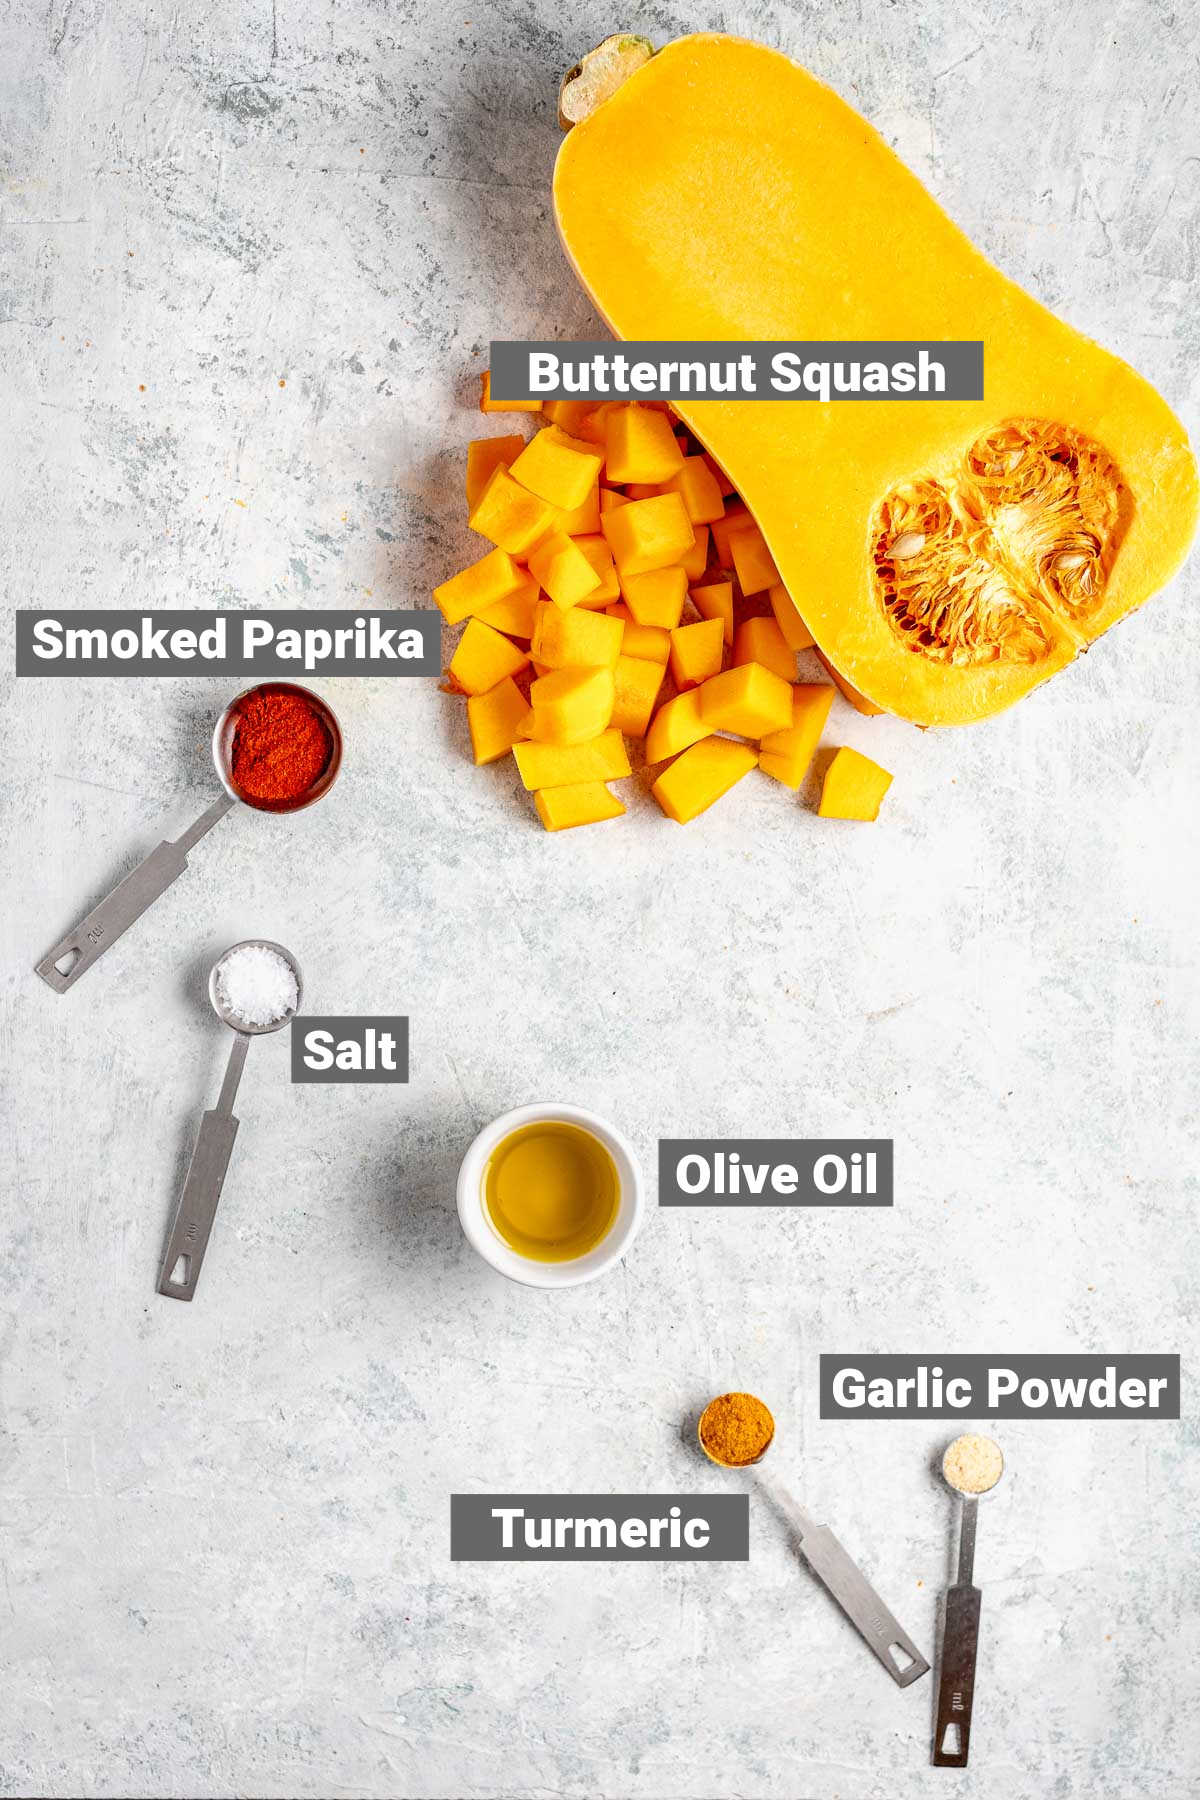 the ingredients you'll need to make this butternut squash recipe